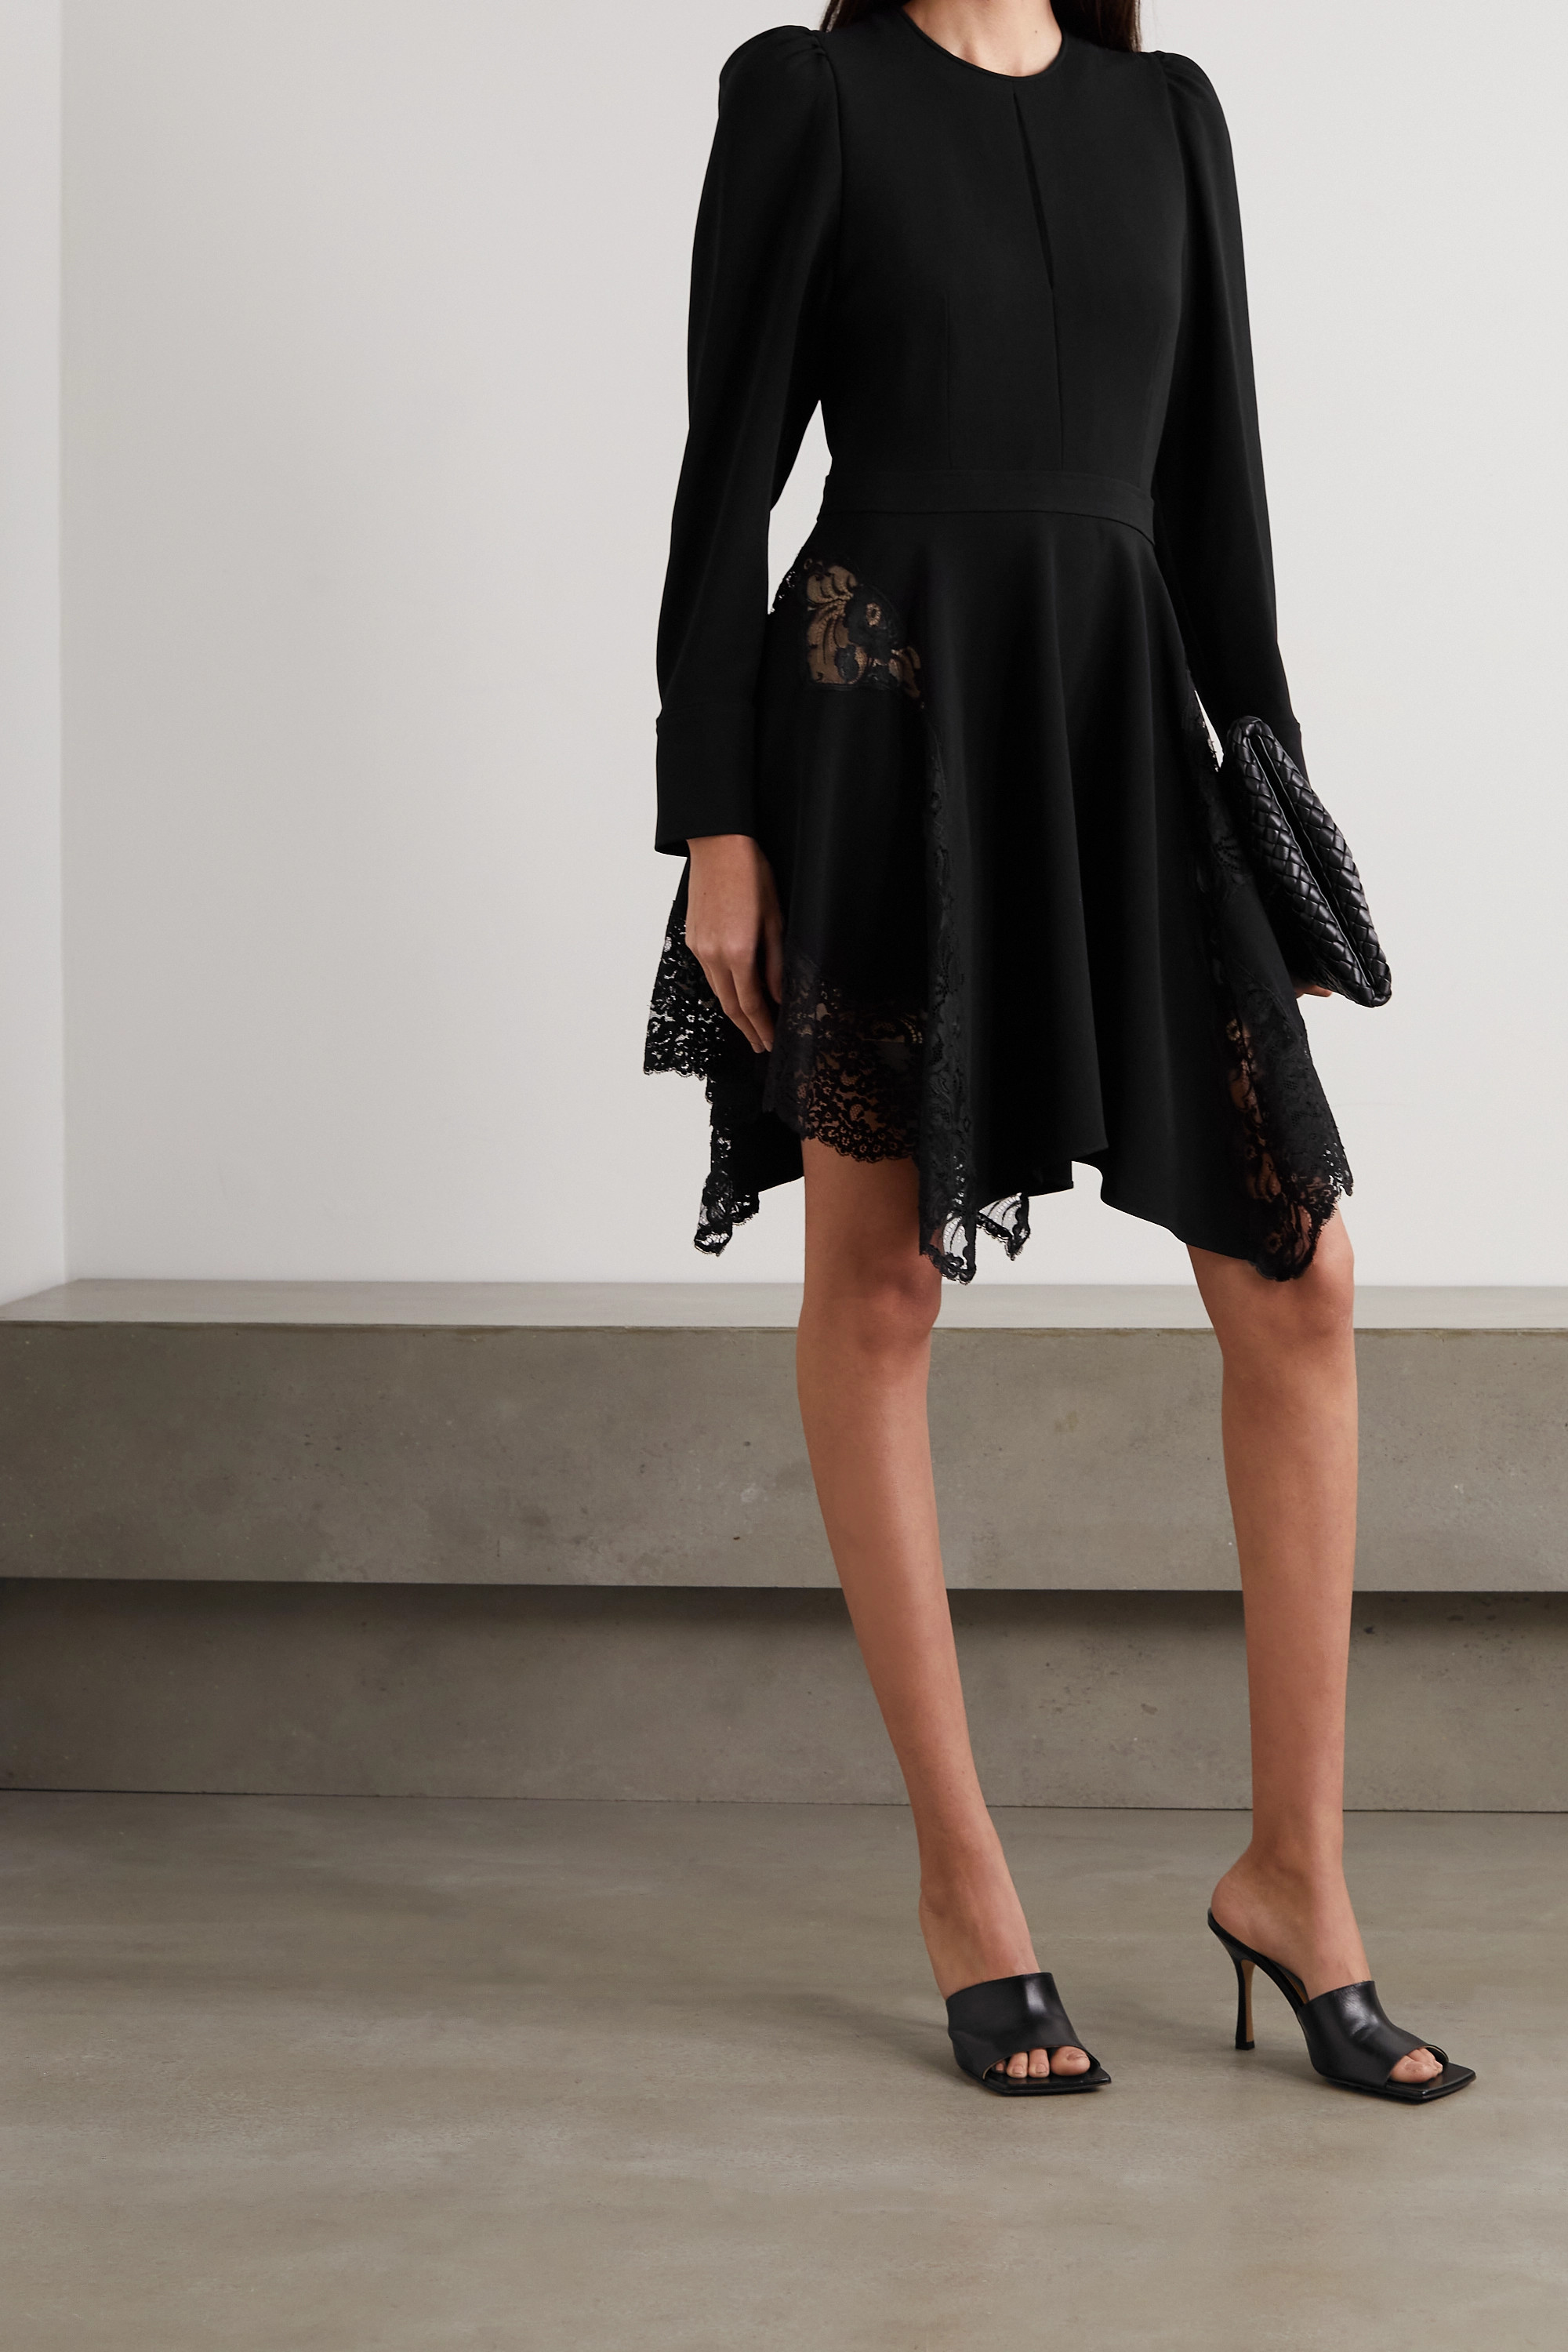 STELLA MCCARTNEY + NET SUSTAIN Celeste asymmetric lace-paneled cady mini dress